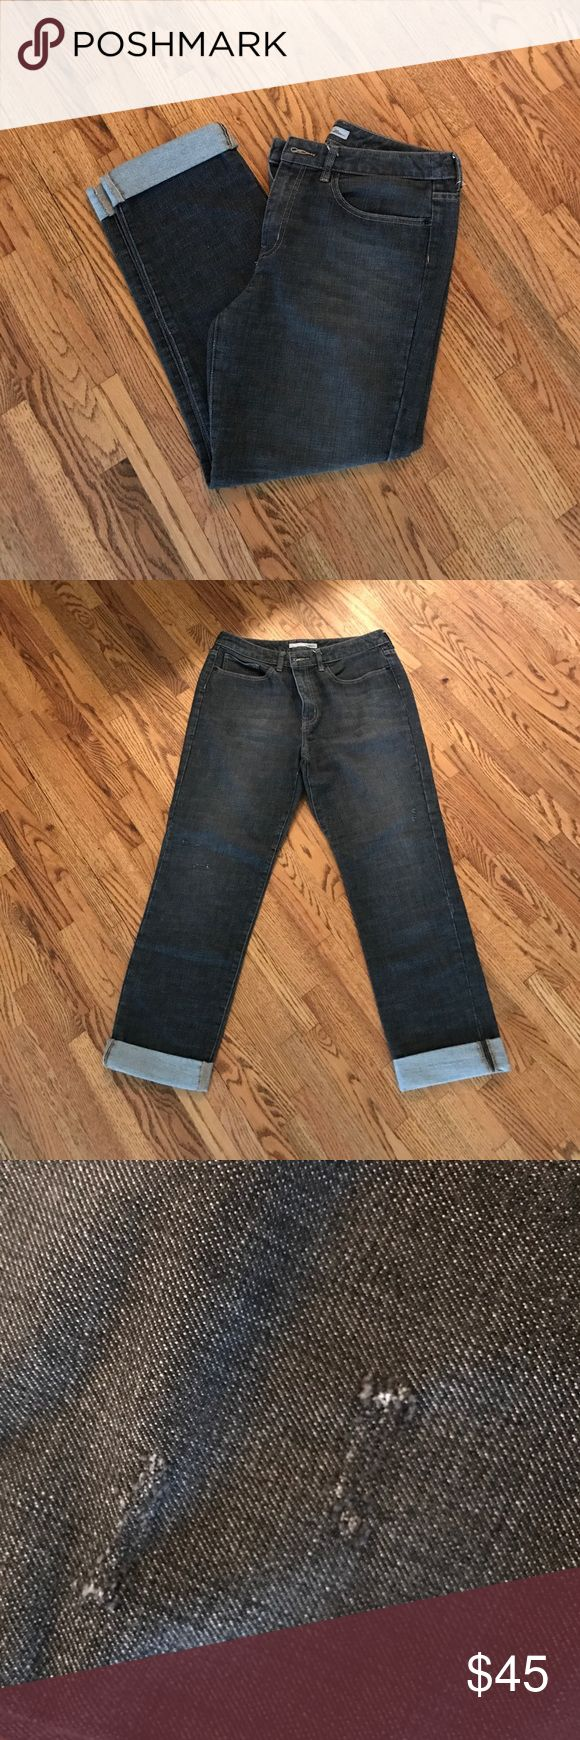 🌾🌷SALE🌷🌾 Chico's Jean Capris 🌾🌷SALE🌷🌾 Excellent Used Condition Chico's Jean Capris. Size 1. Small blemishes made into the pants as pictured. No signs of wear or tear. (*See sale listing for details.*) Chico's Jeans Ankle & Cropped